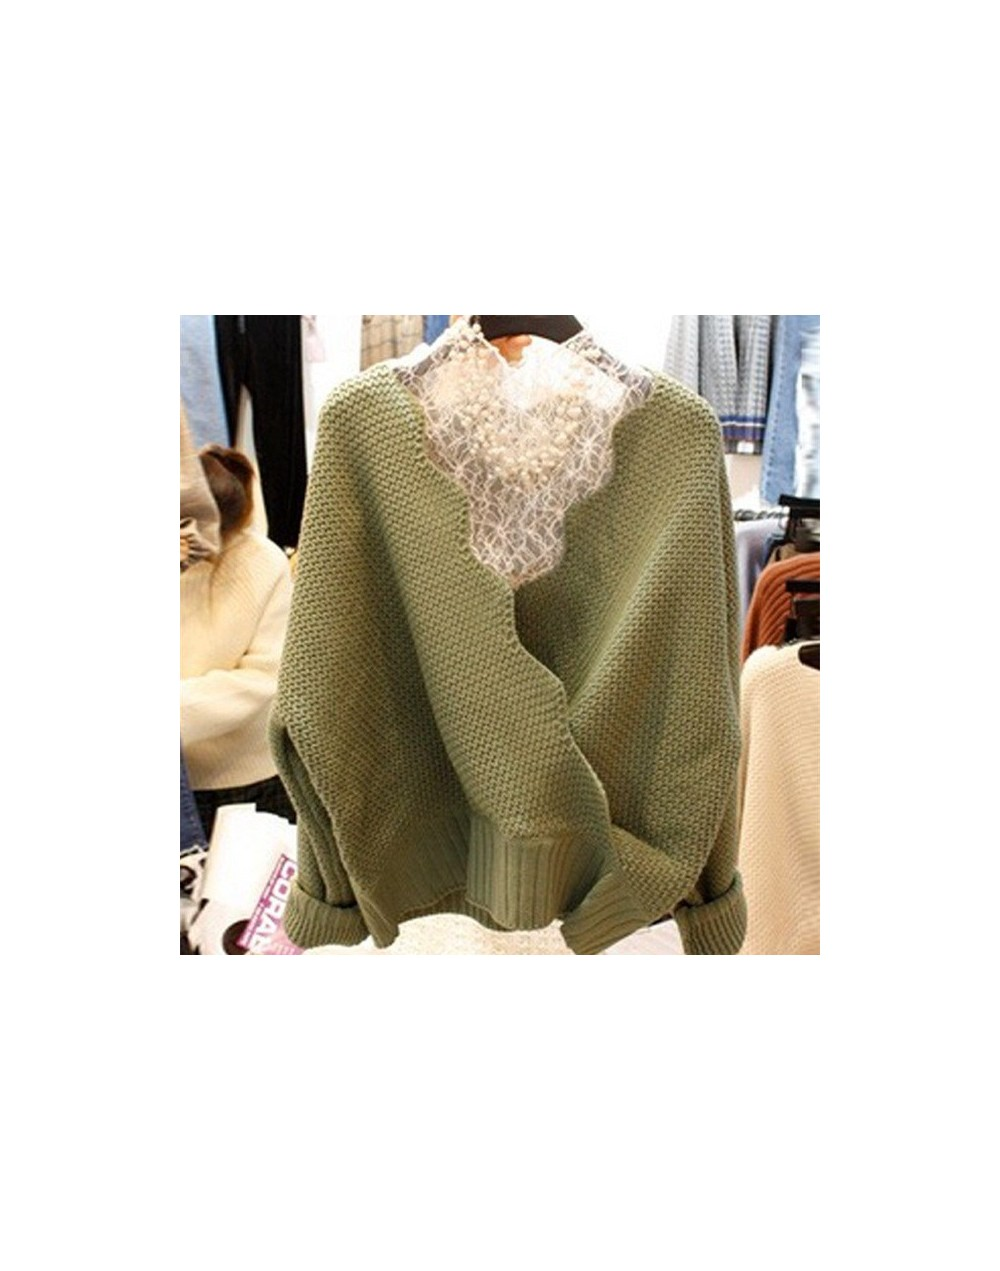 2019 Autumn Knitted Women Sweater&Lace Tops Two Pieces Solid V-neck Sueter Mujer Loose Fashion New Pullovers 68397 - green -...